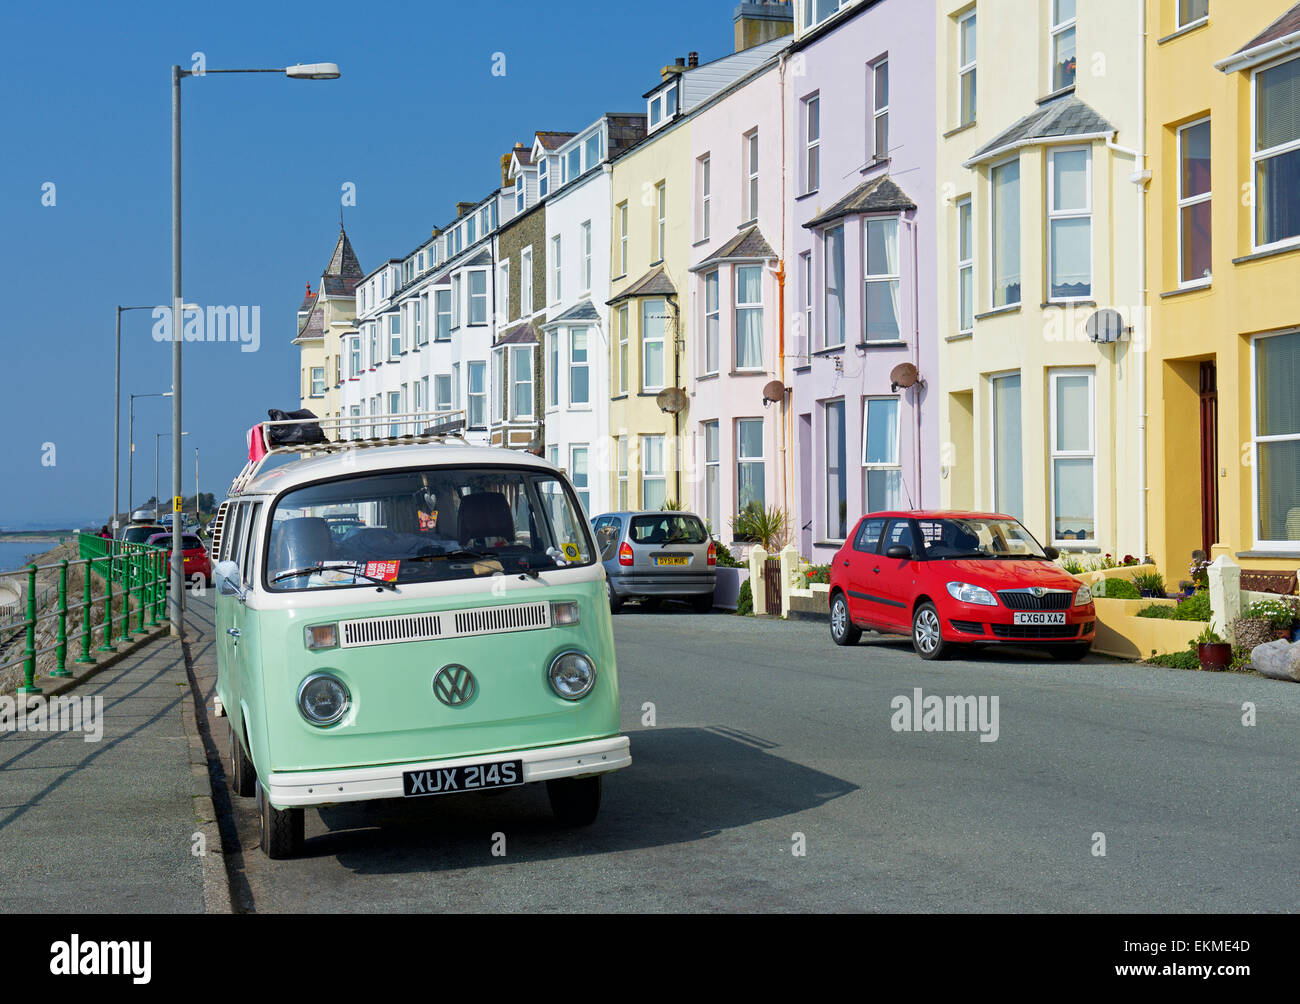 VW campervan parked in front of hotels in Criccieth, Gwynedd, Wales UK - Stock Image